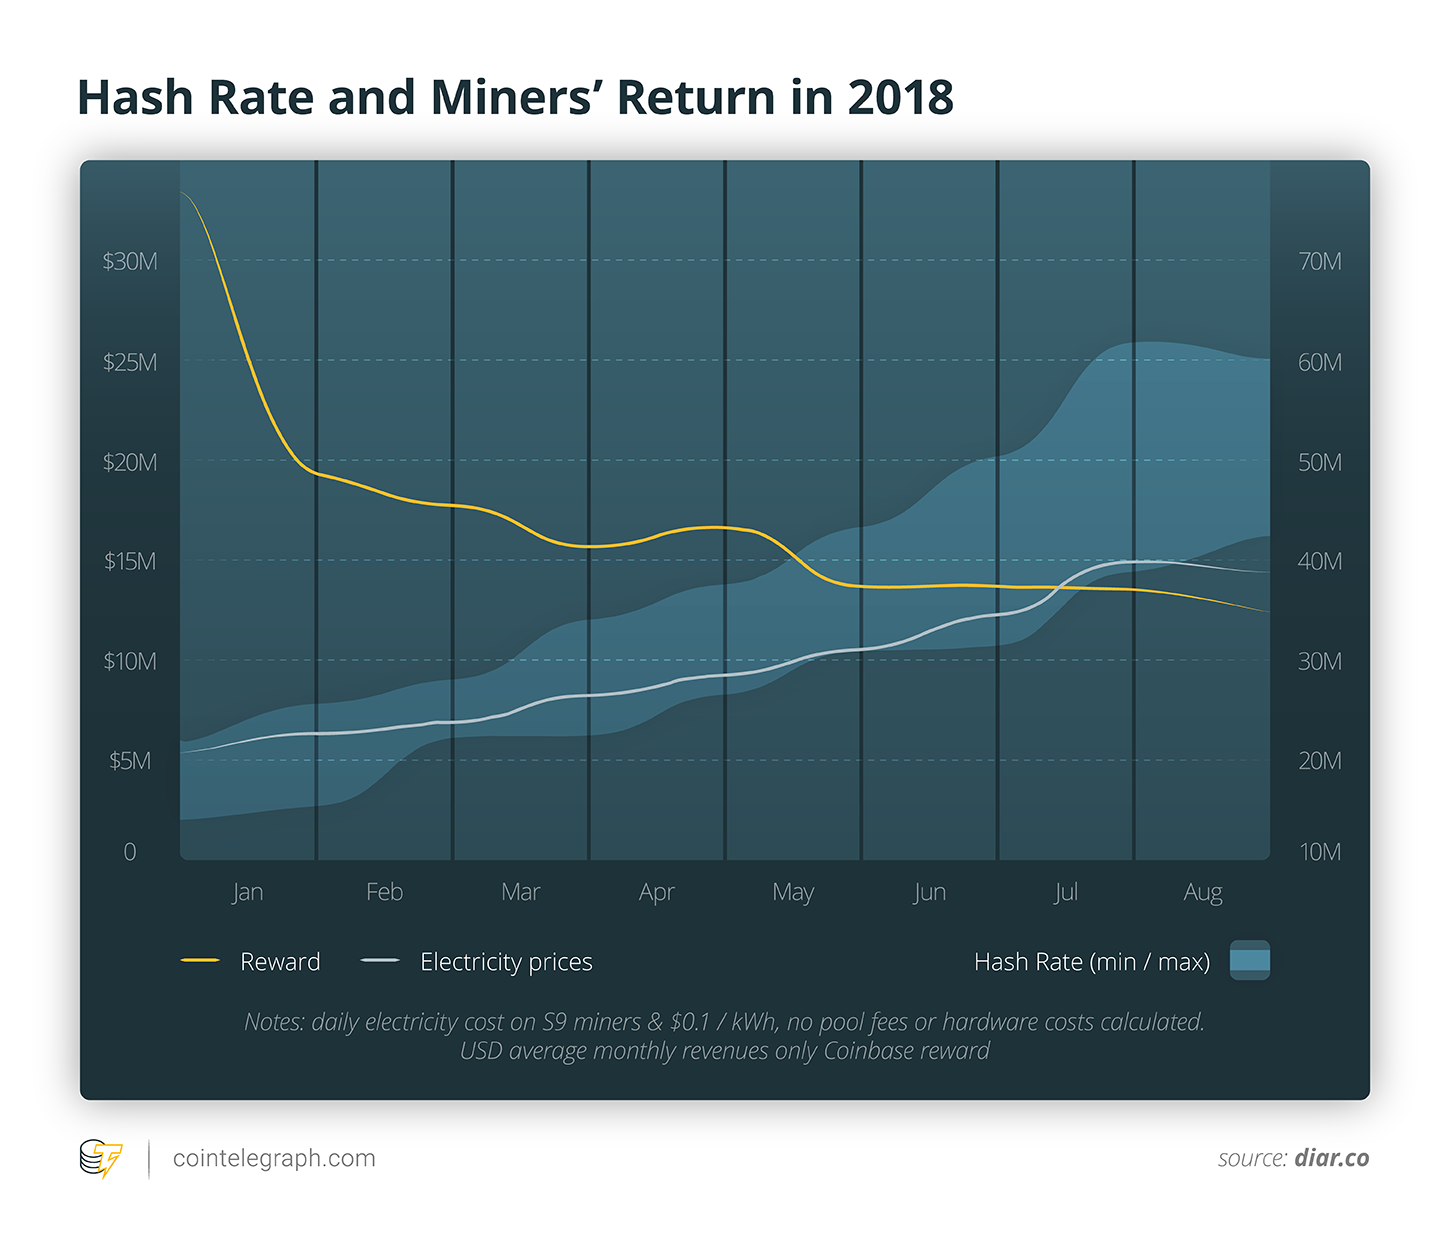 Hash Rate and Miners' Return in 2018